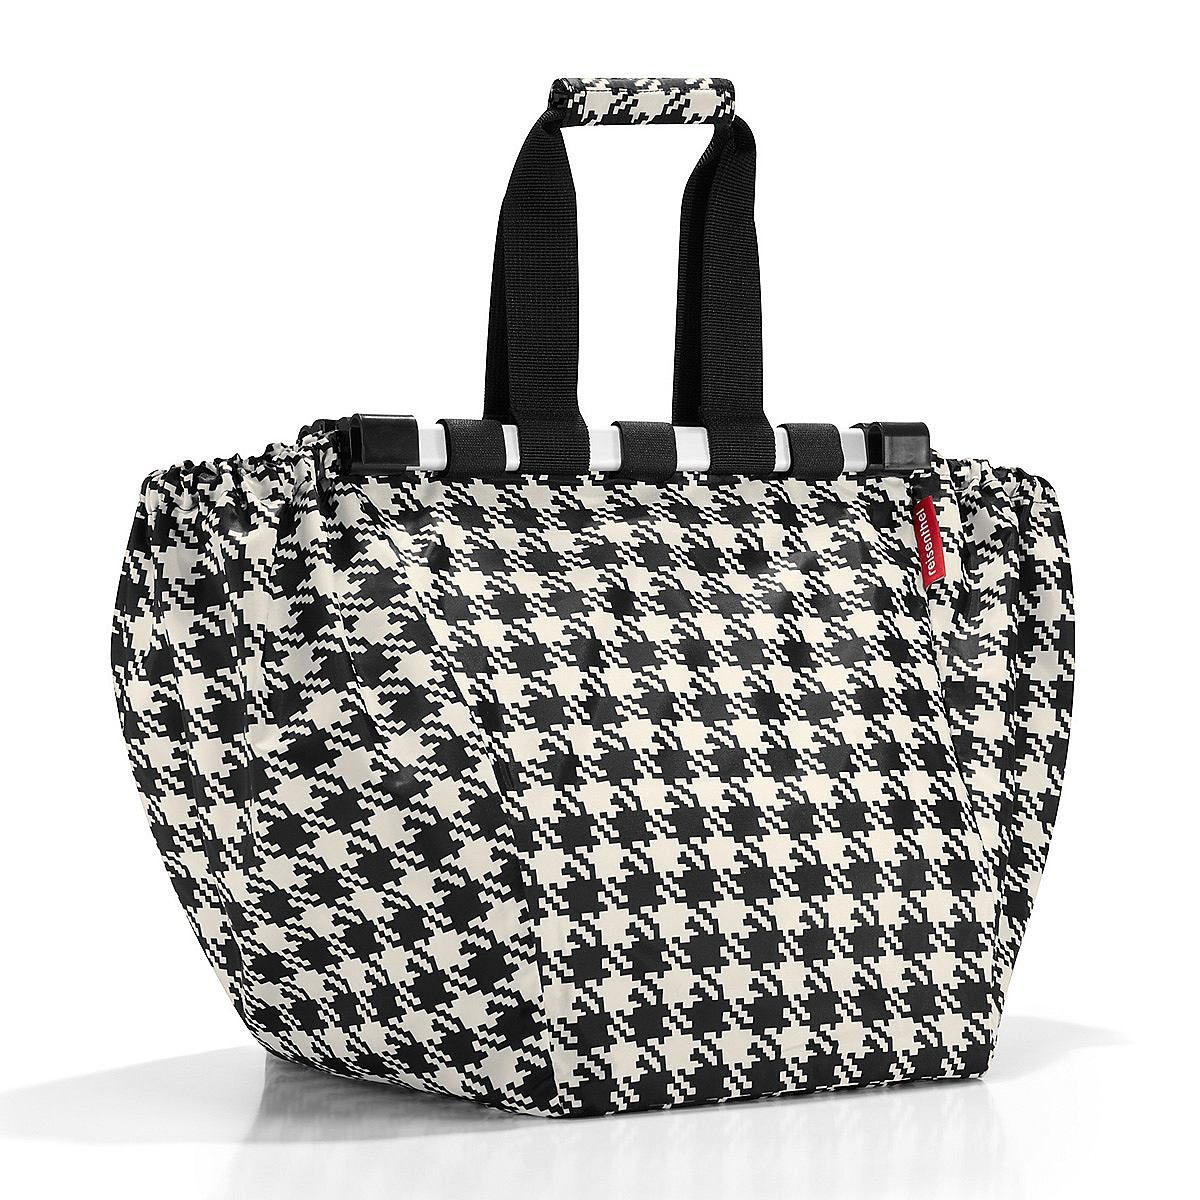 REISENTHEL® Easyshoppingbag fifties